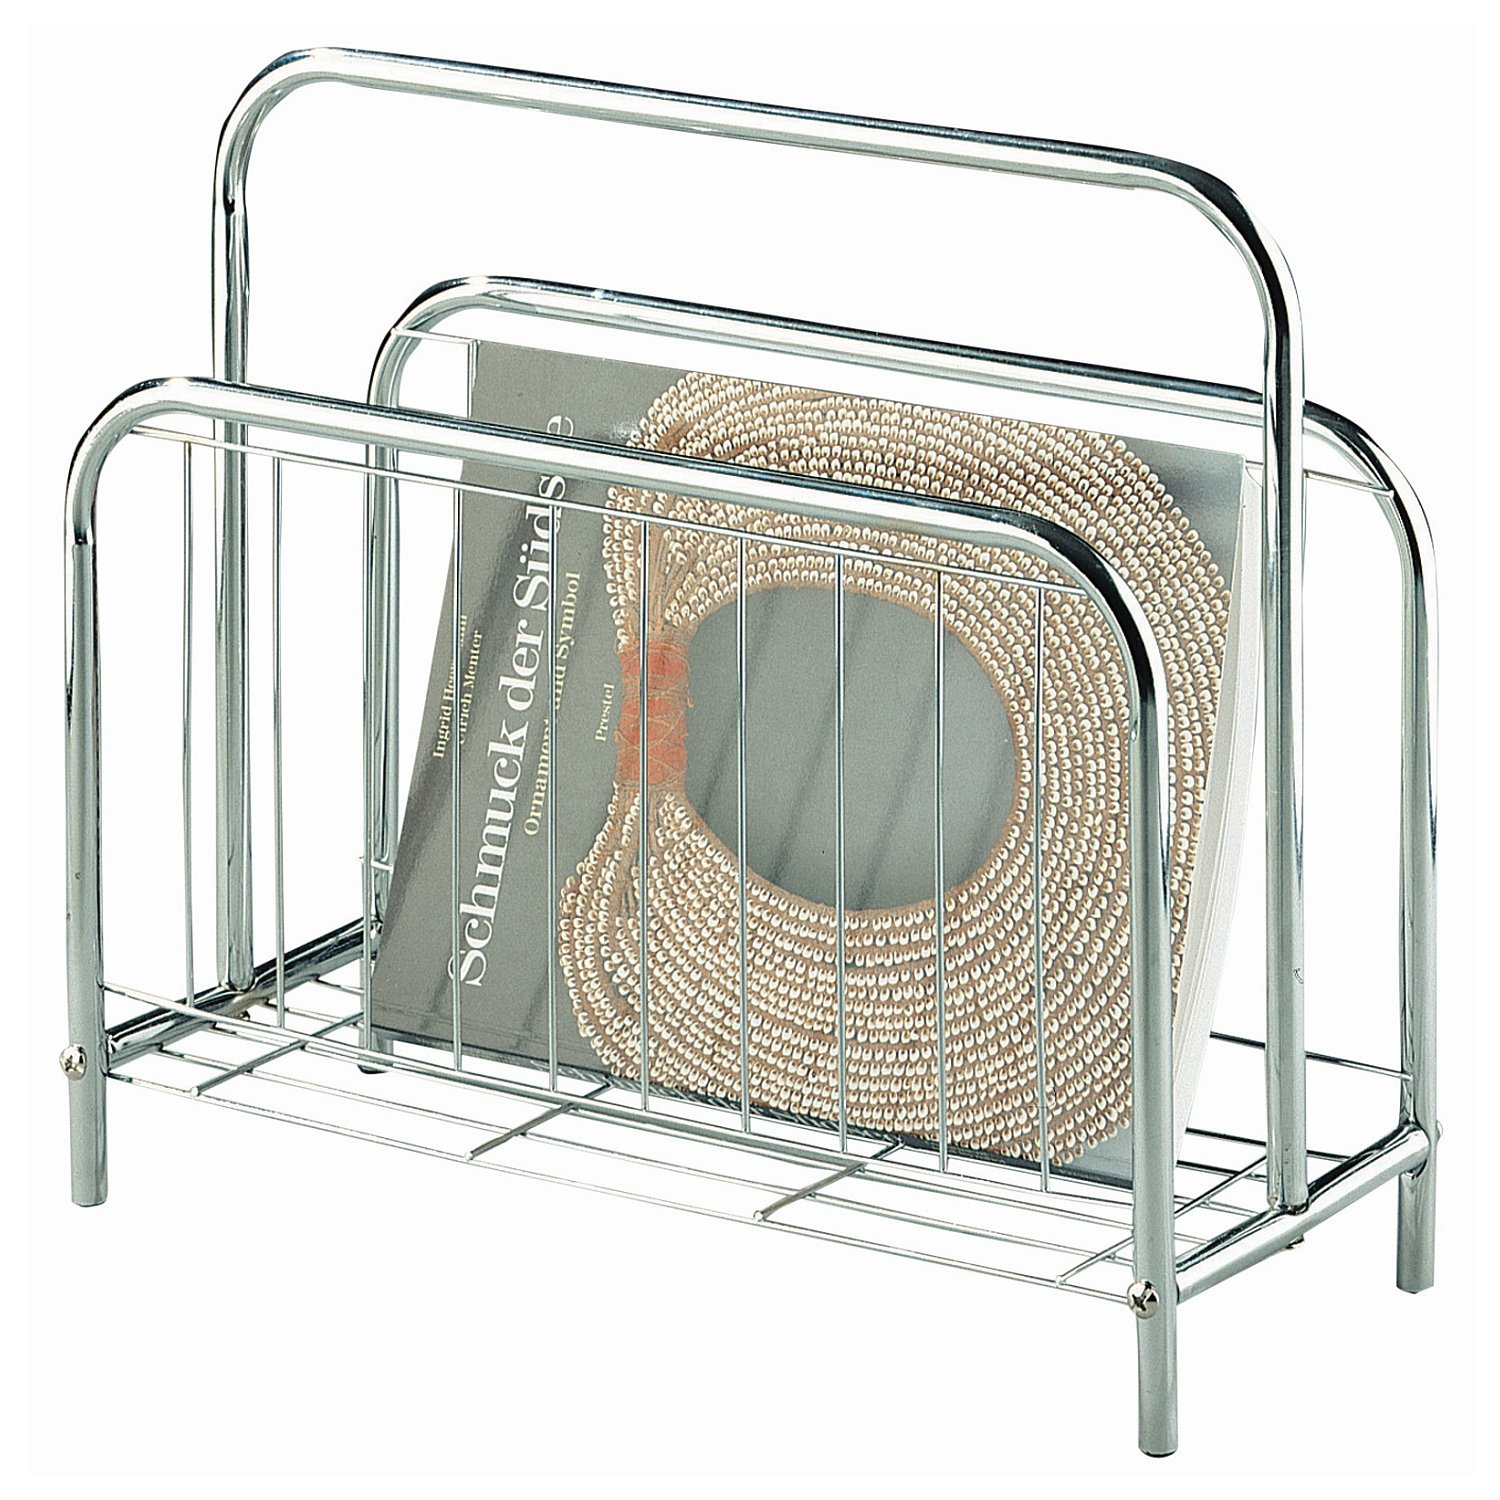 HAKU Furniture 60232 Magazine Rack, 39 x 35 x 18 cm